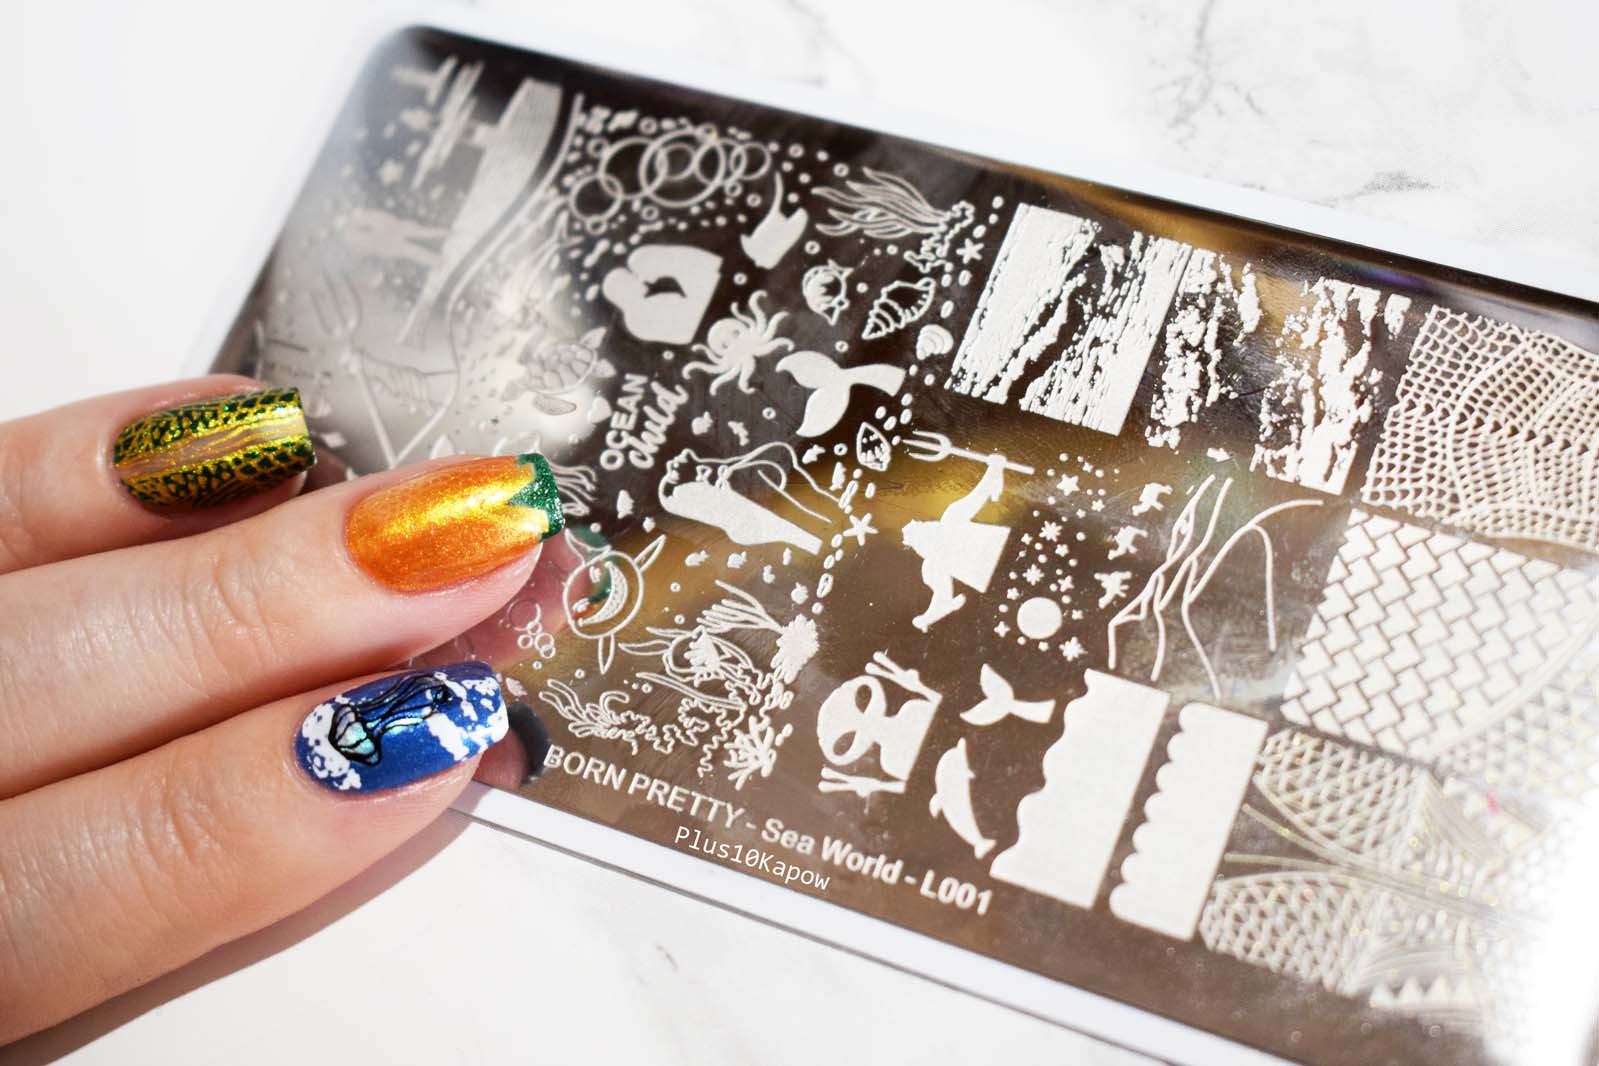 Born Pretty Store Sea World L001 stamping plate Plus10Kapow